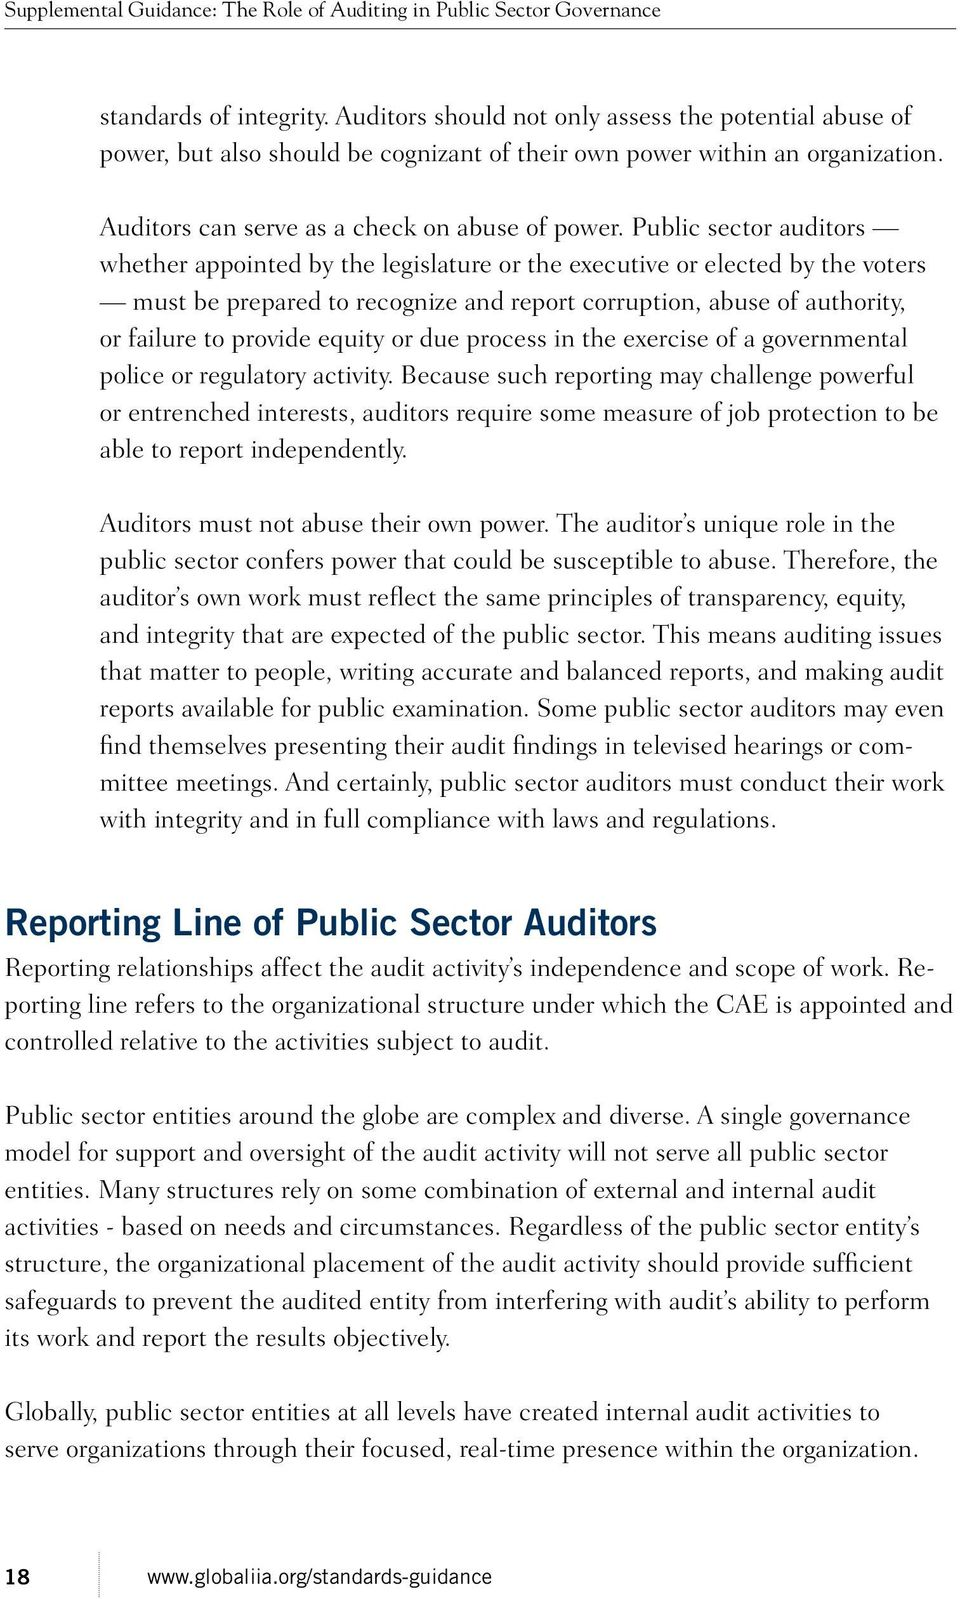 Public sector auditors whether appointed by the legislature or the executive or elected by the voters must be prepared to recognize and report corruption, abuse of authority, or failure to provide